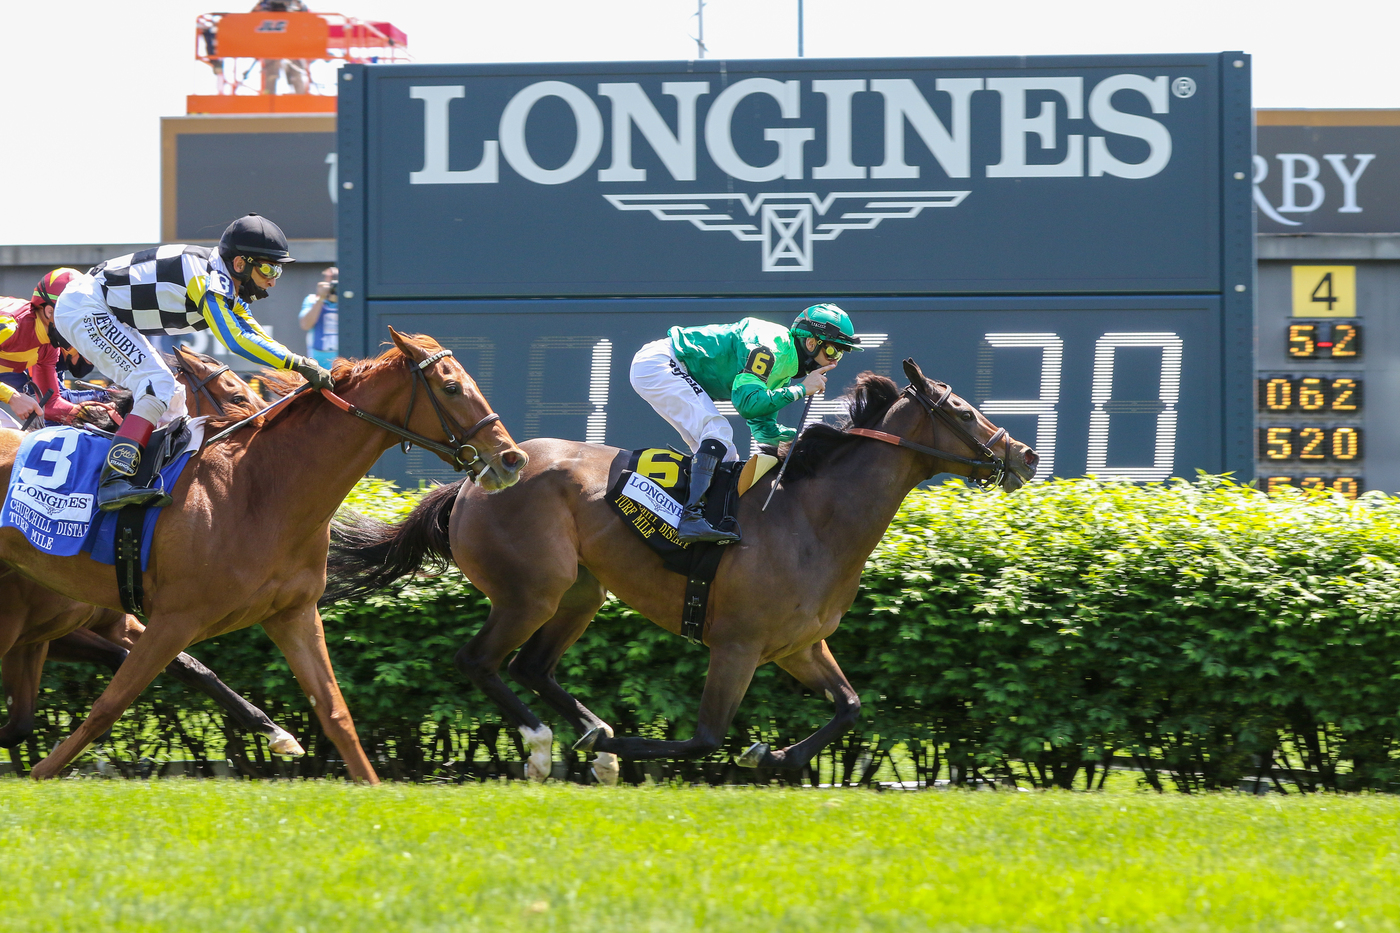 Longines Flat Racing Event: Longines timed the victory of Medina Spirit in the 147th Kentucky Derby 5